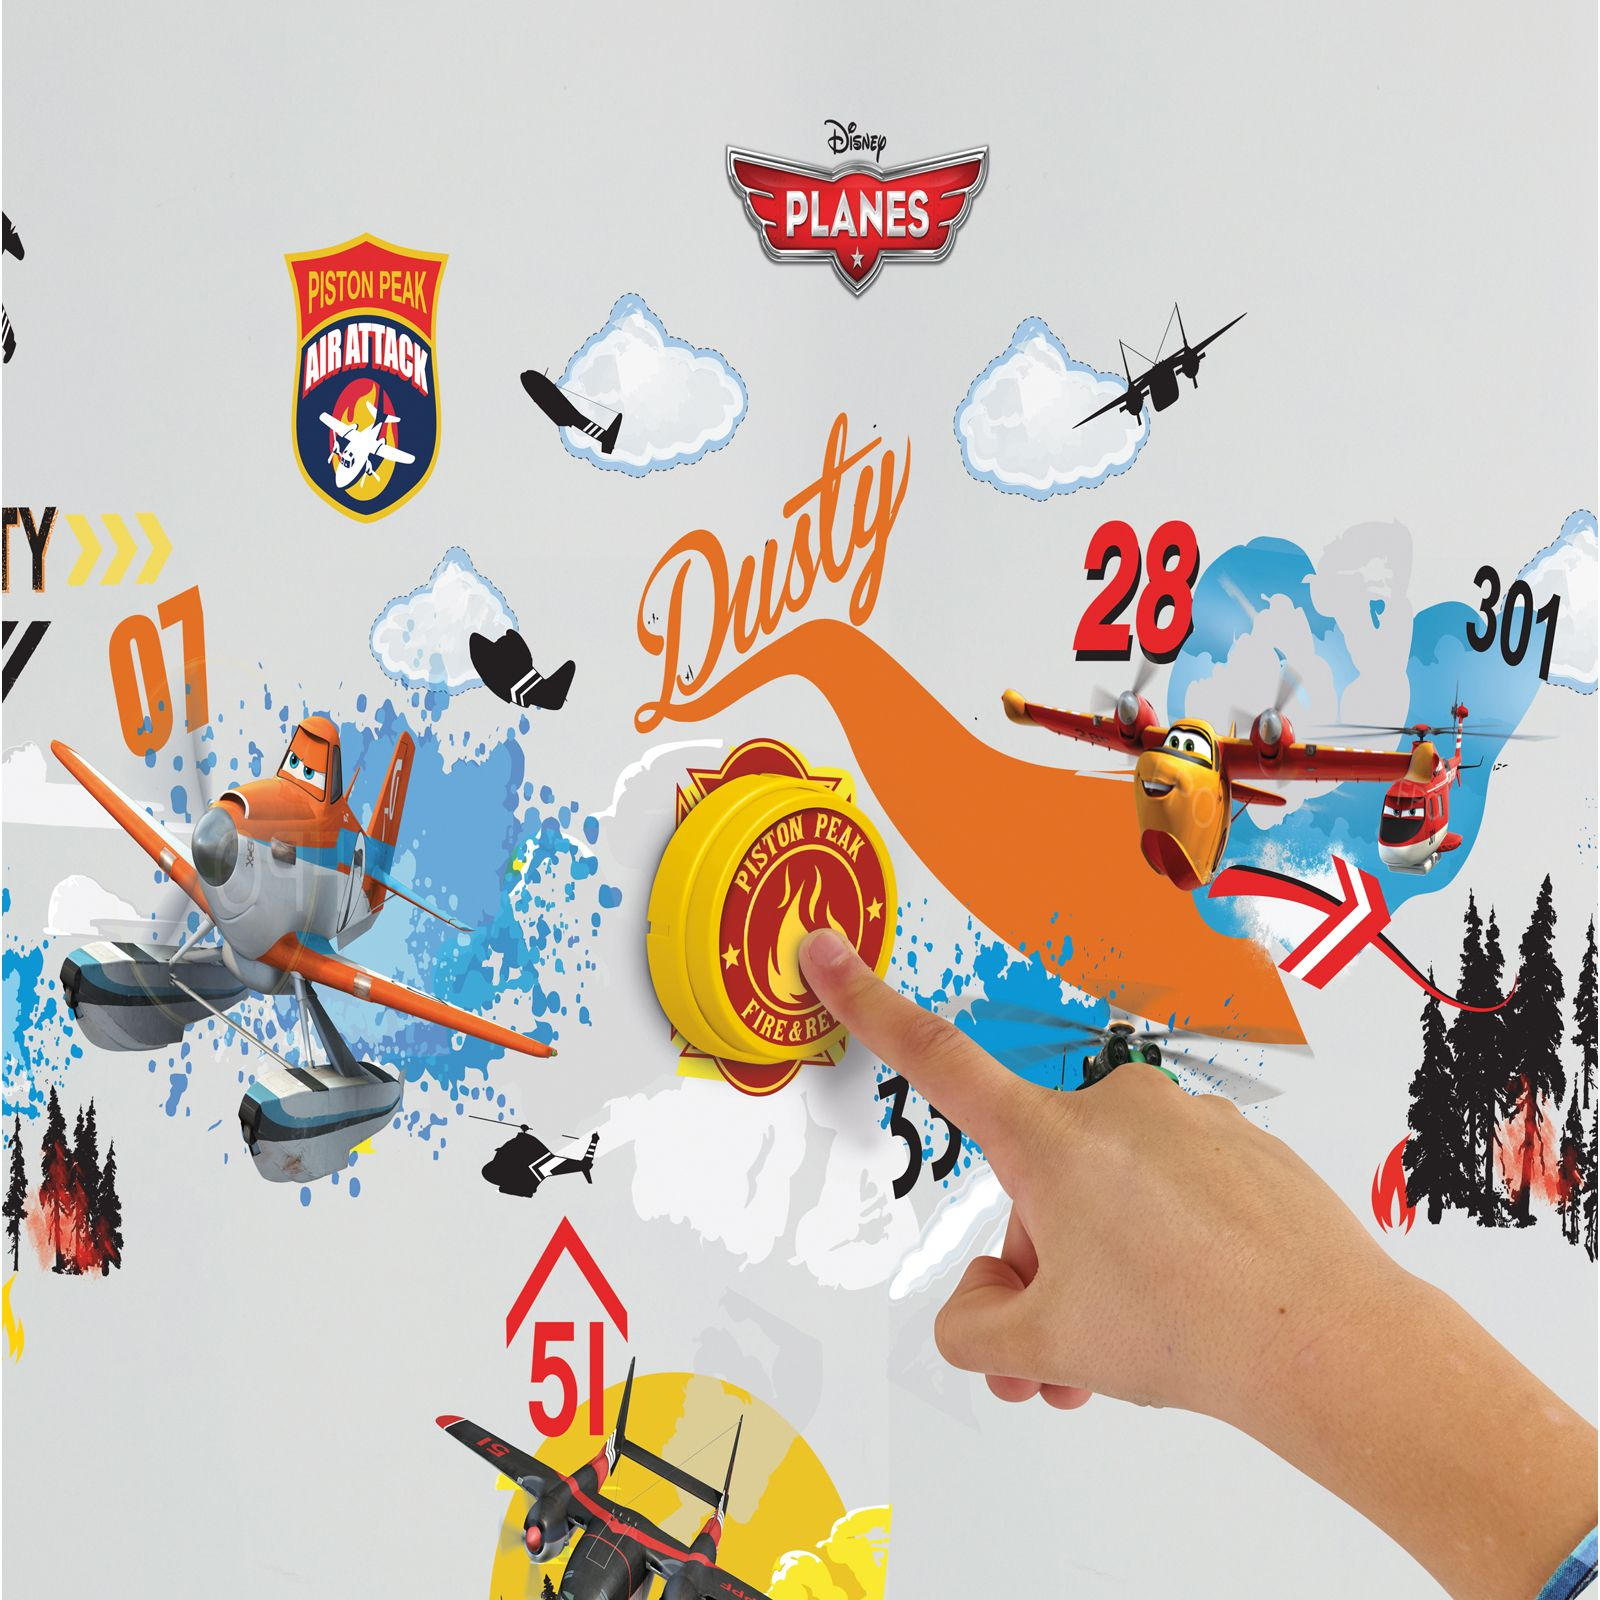 about disney planes doorbell with 40 wall stickers new room decor kids